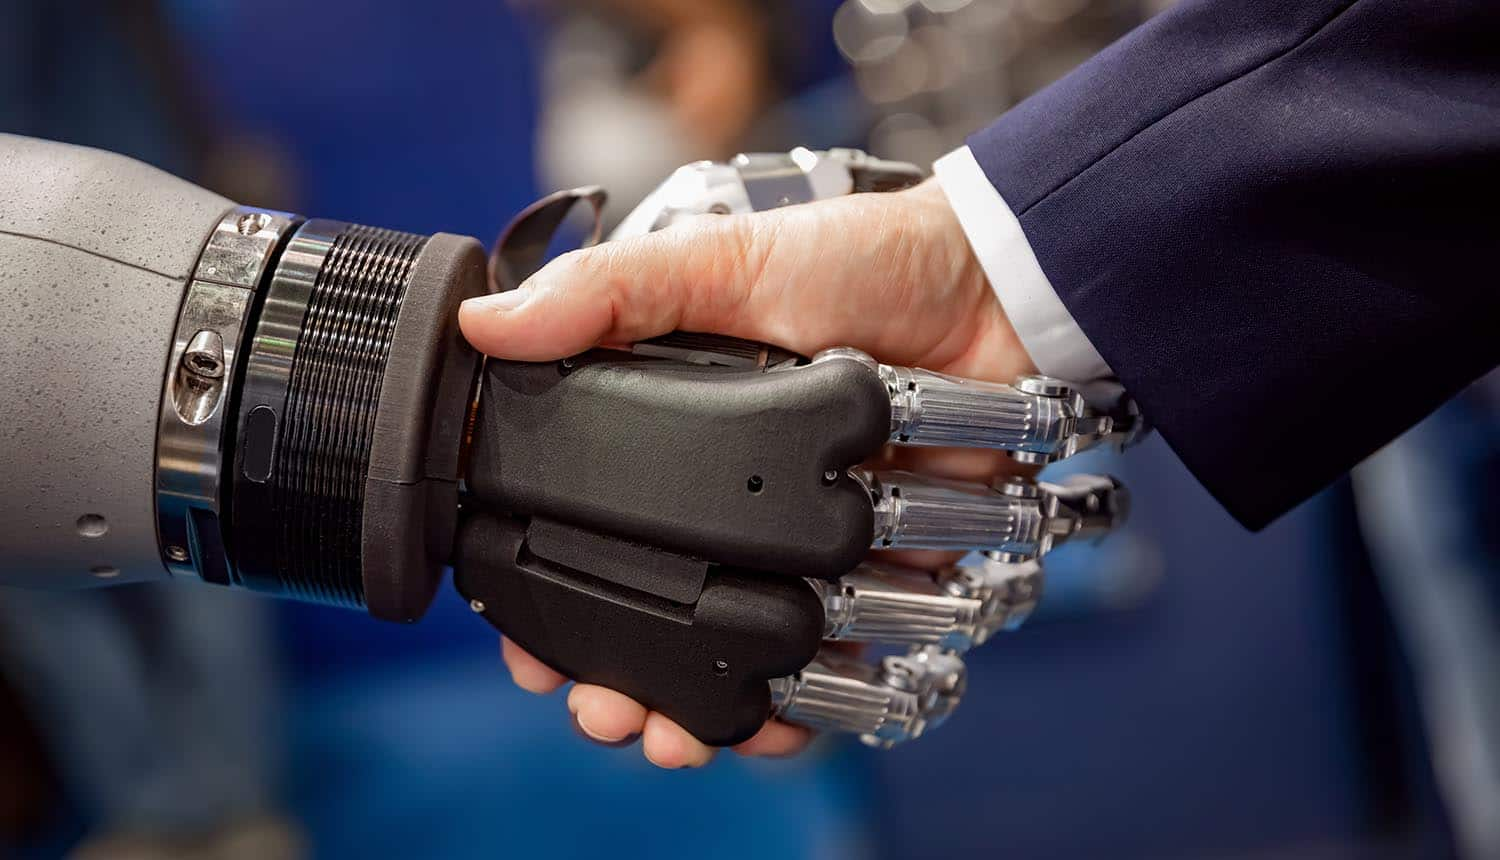 Hand of a businessman shaking hands with a droid robot